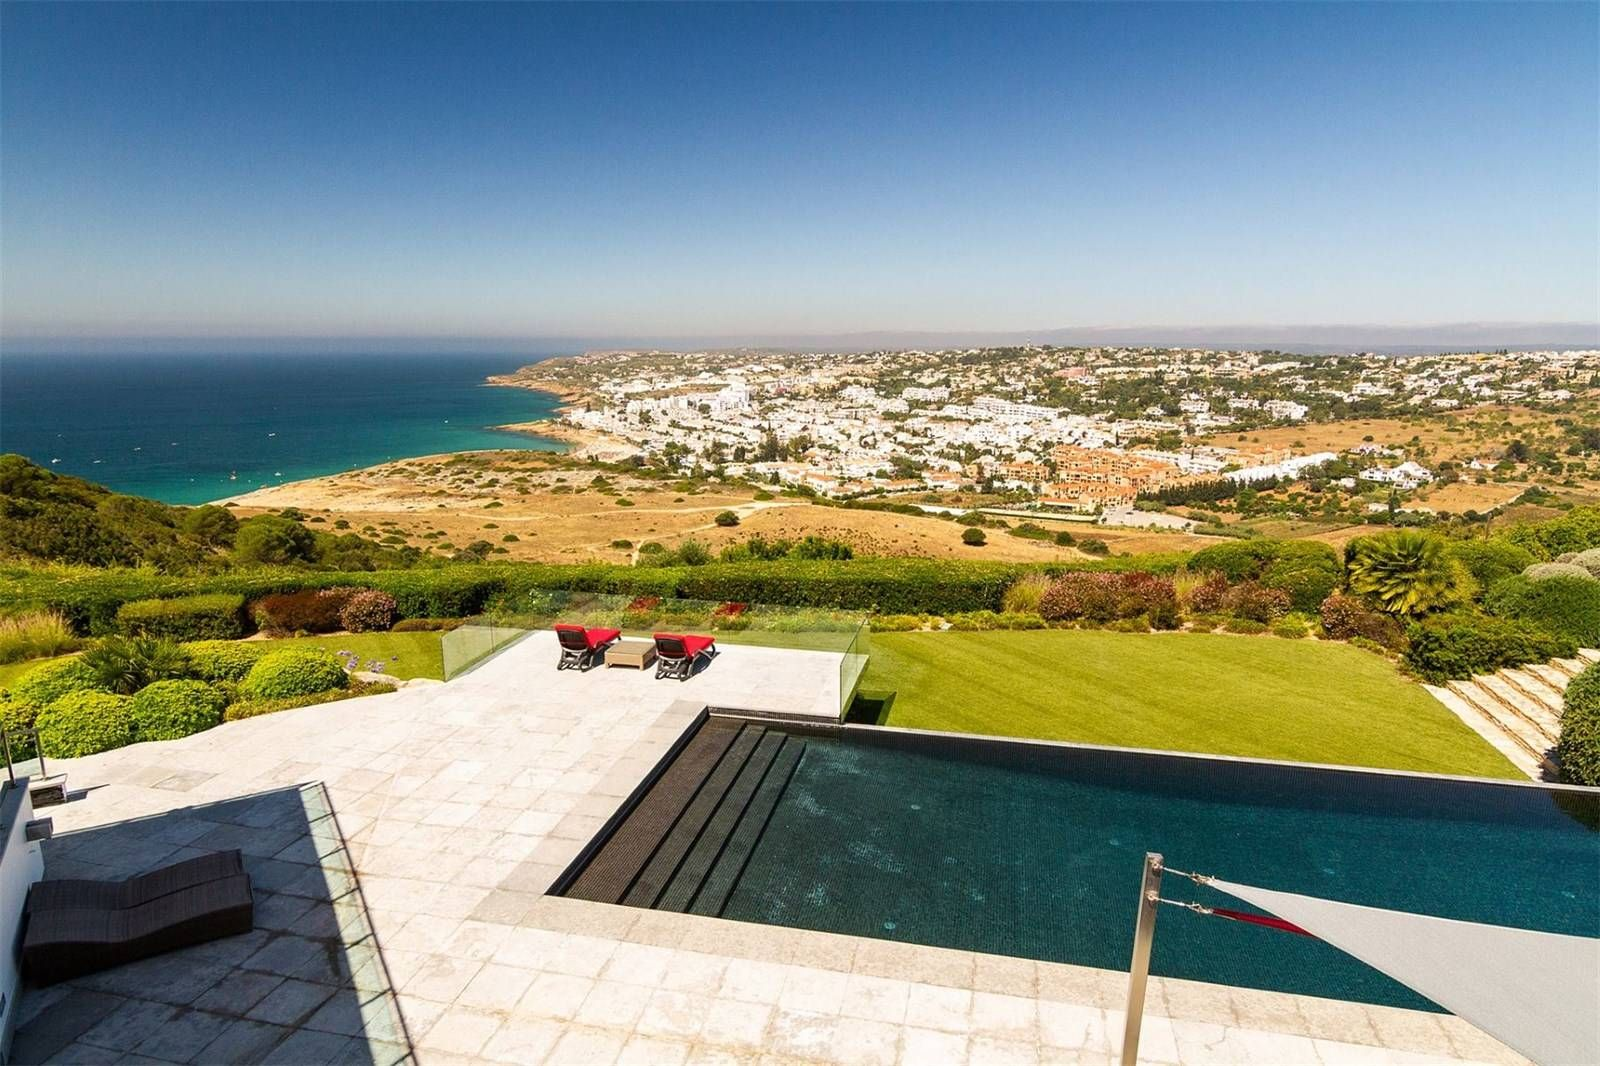 Lagos Algarve Portugal Luxury Home For Sale Luxury Homes